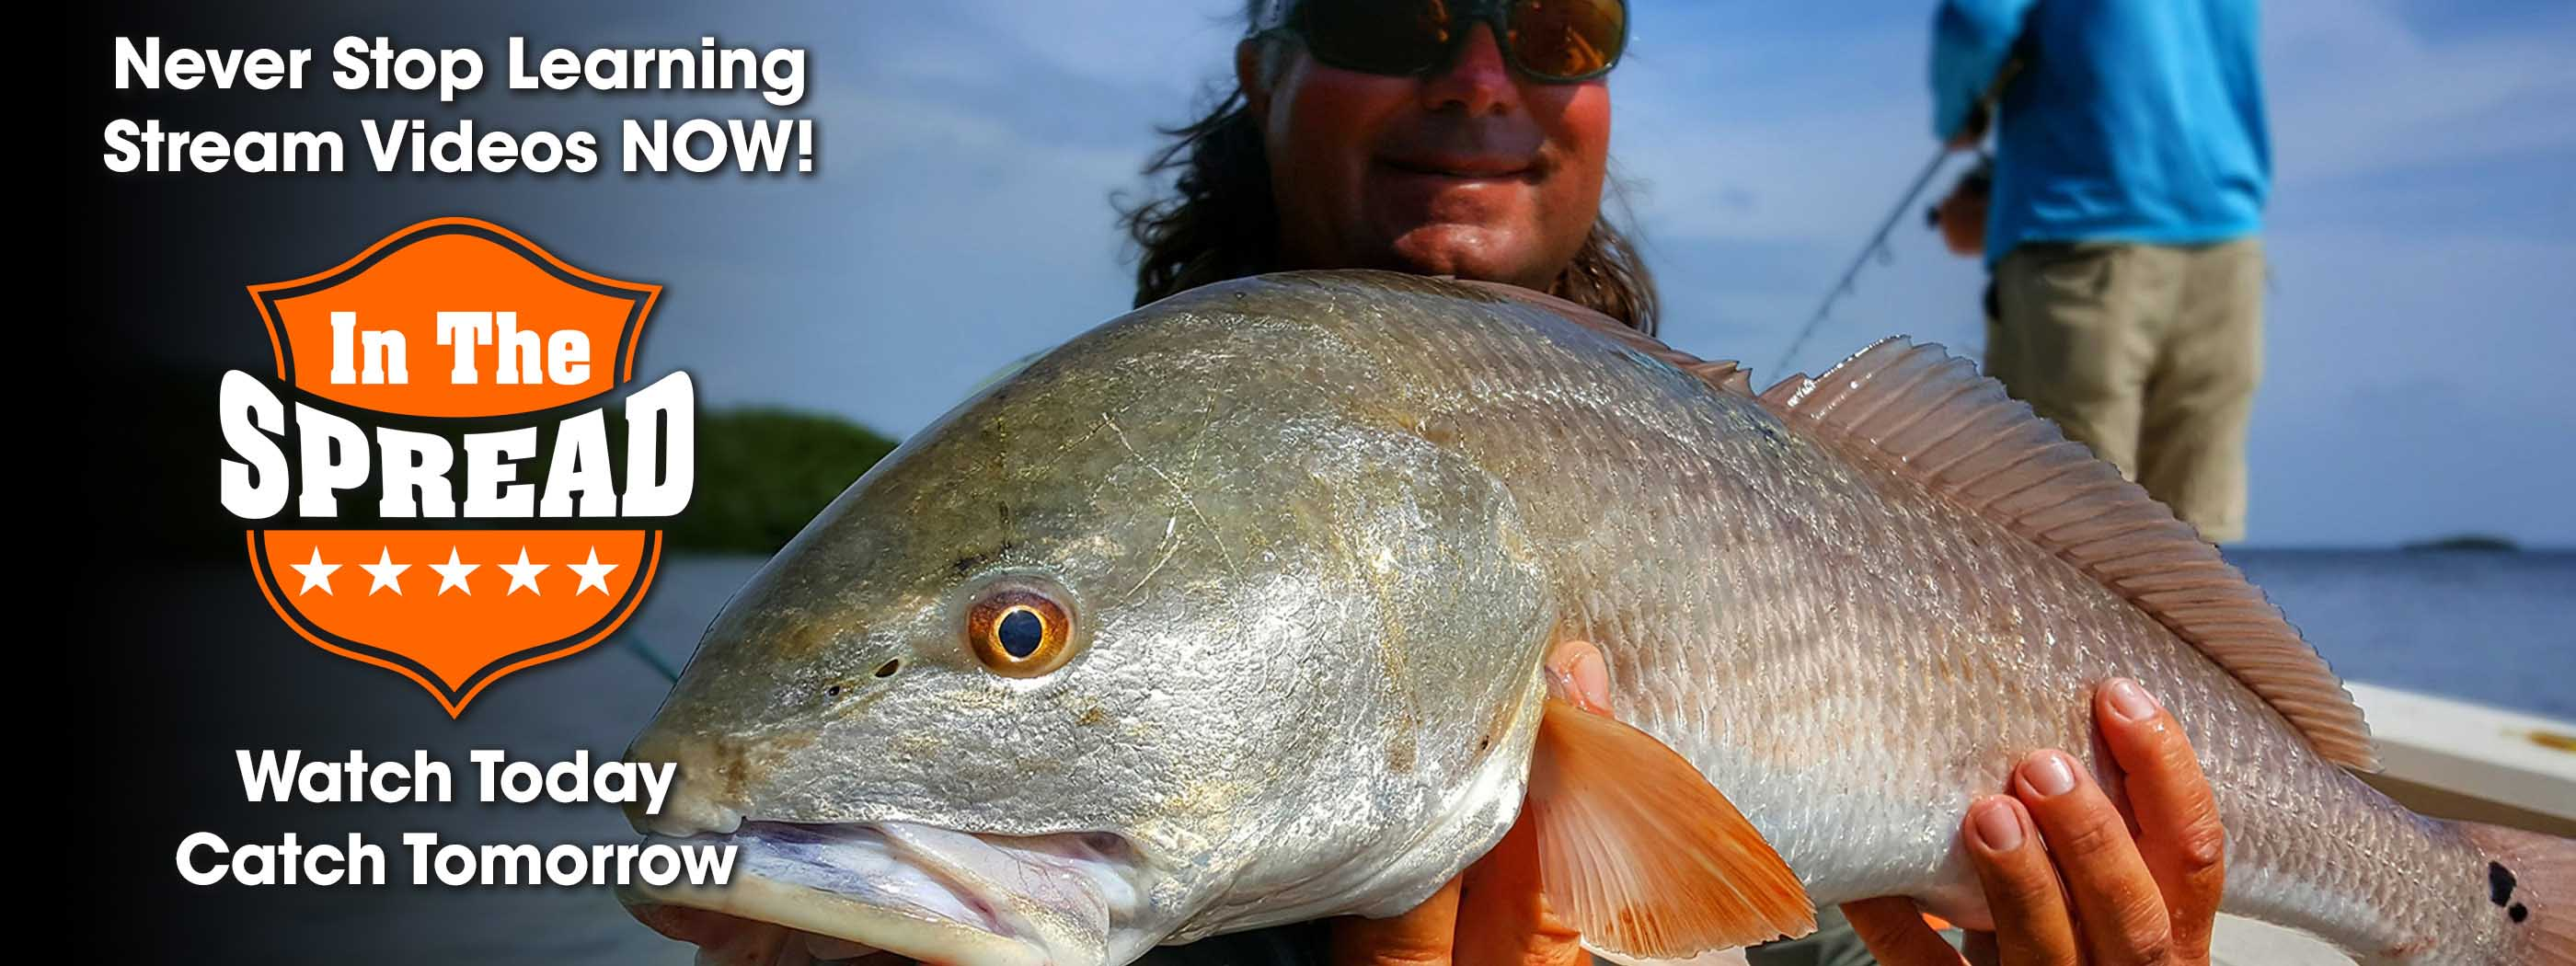 redfish fishing videos in the spread